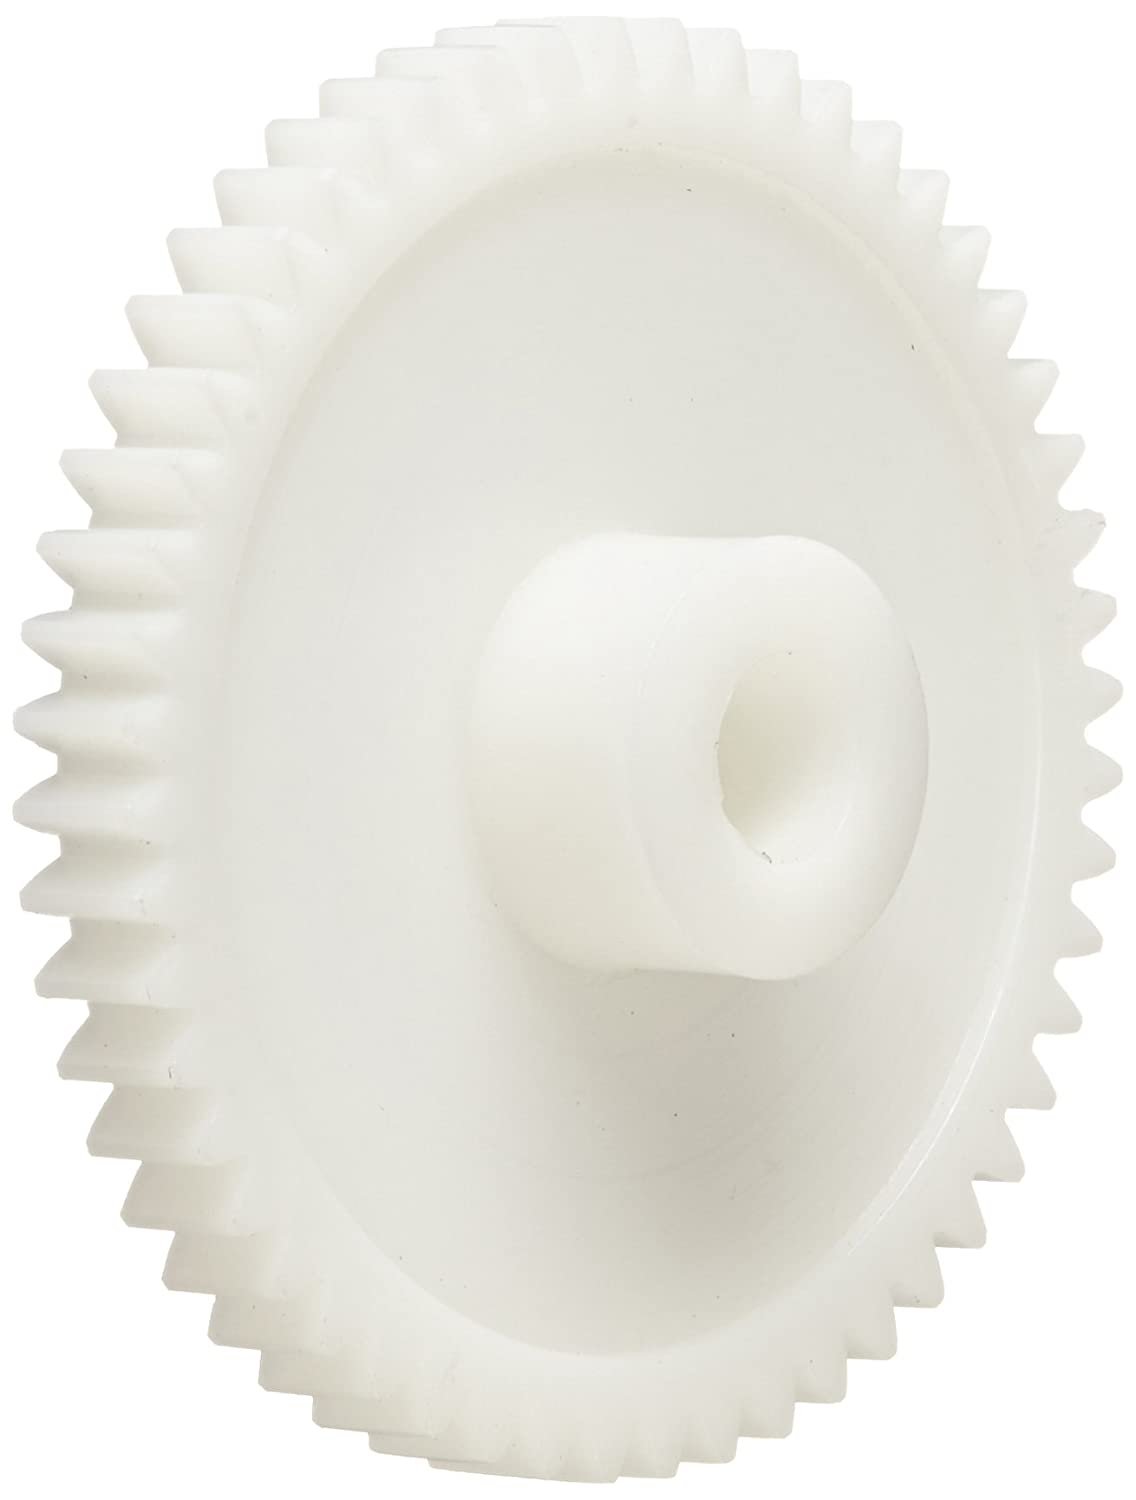 0.917 OD 20 Teeth 20 Degree Pressure Angle Spur Gear 0.833 Pitch Diameter Polyoxymethylene Inch 24 Pitch 3//16 Bore 1//4 Face Width